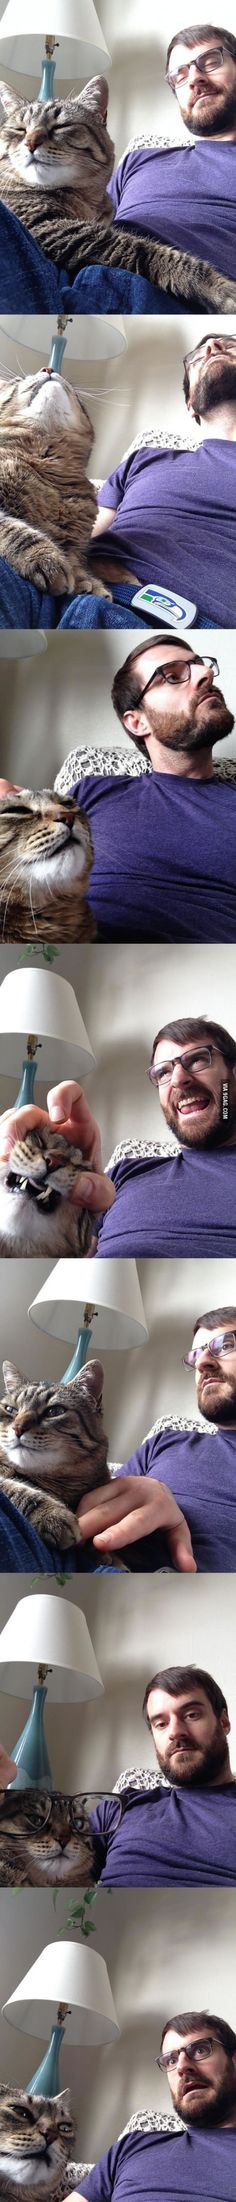 My wife is stuck at work today, so me and the cat texted her some selfies.